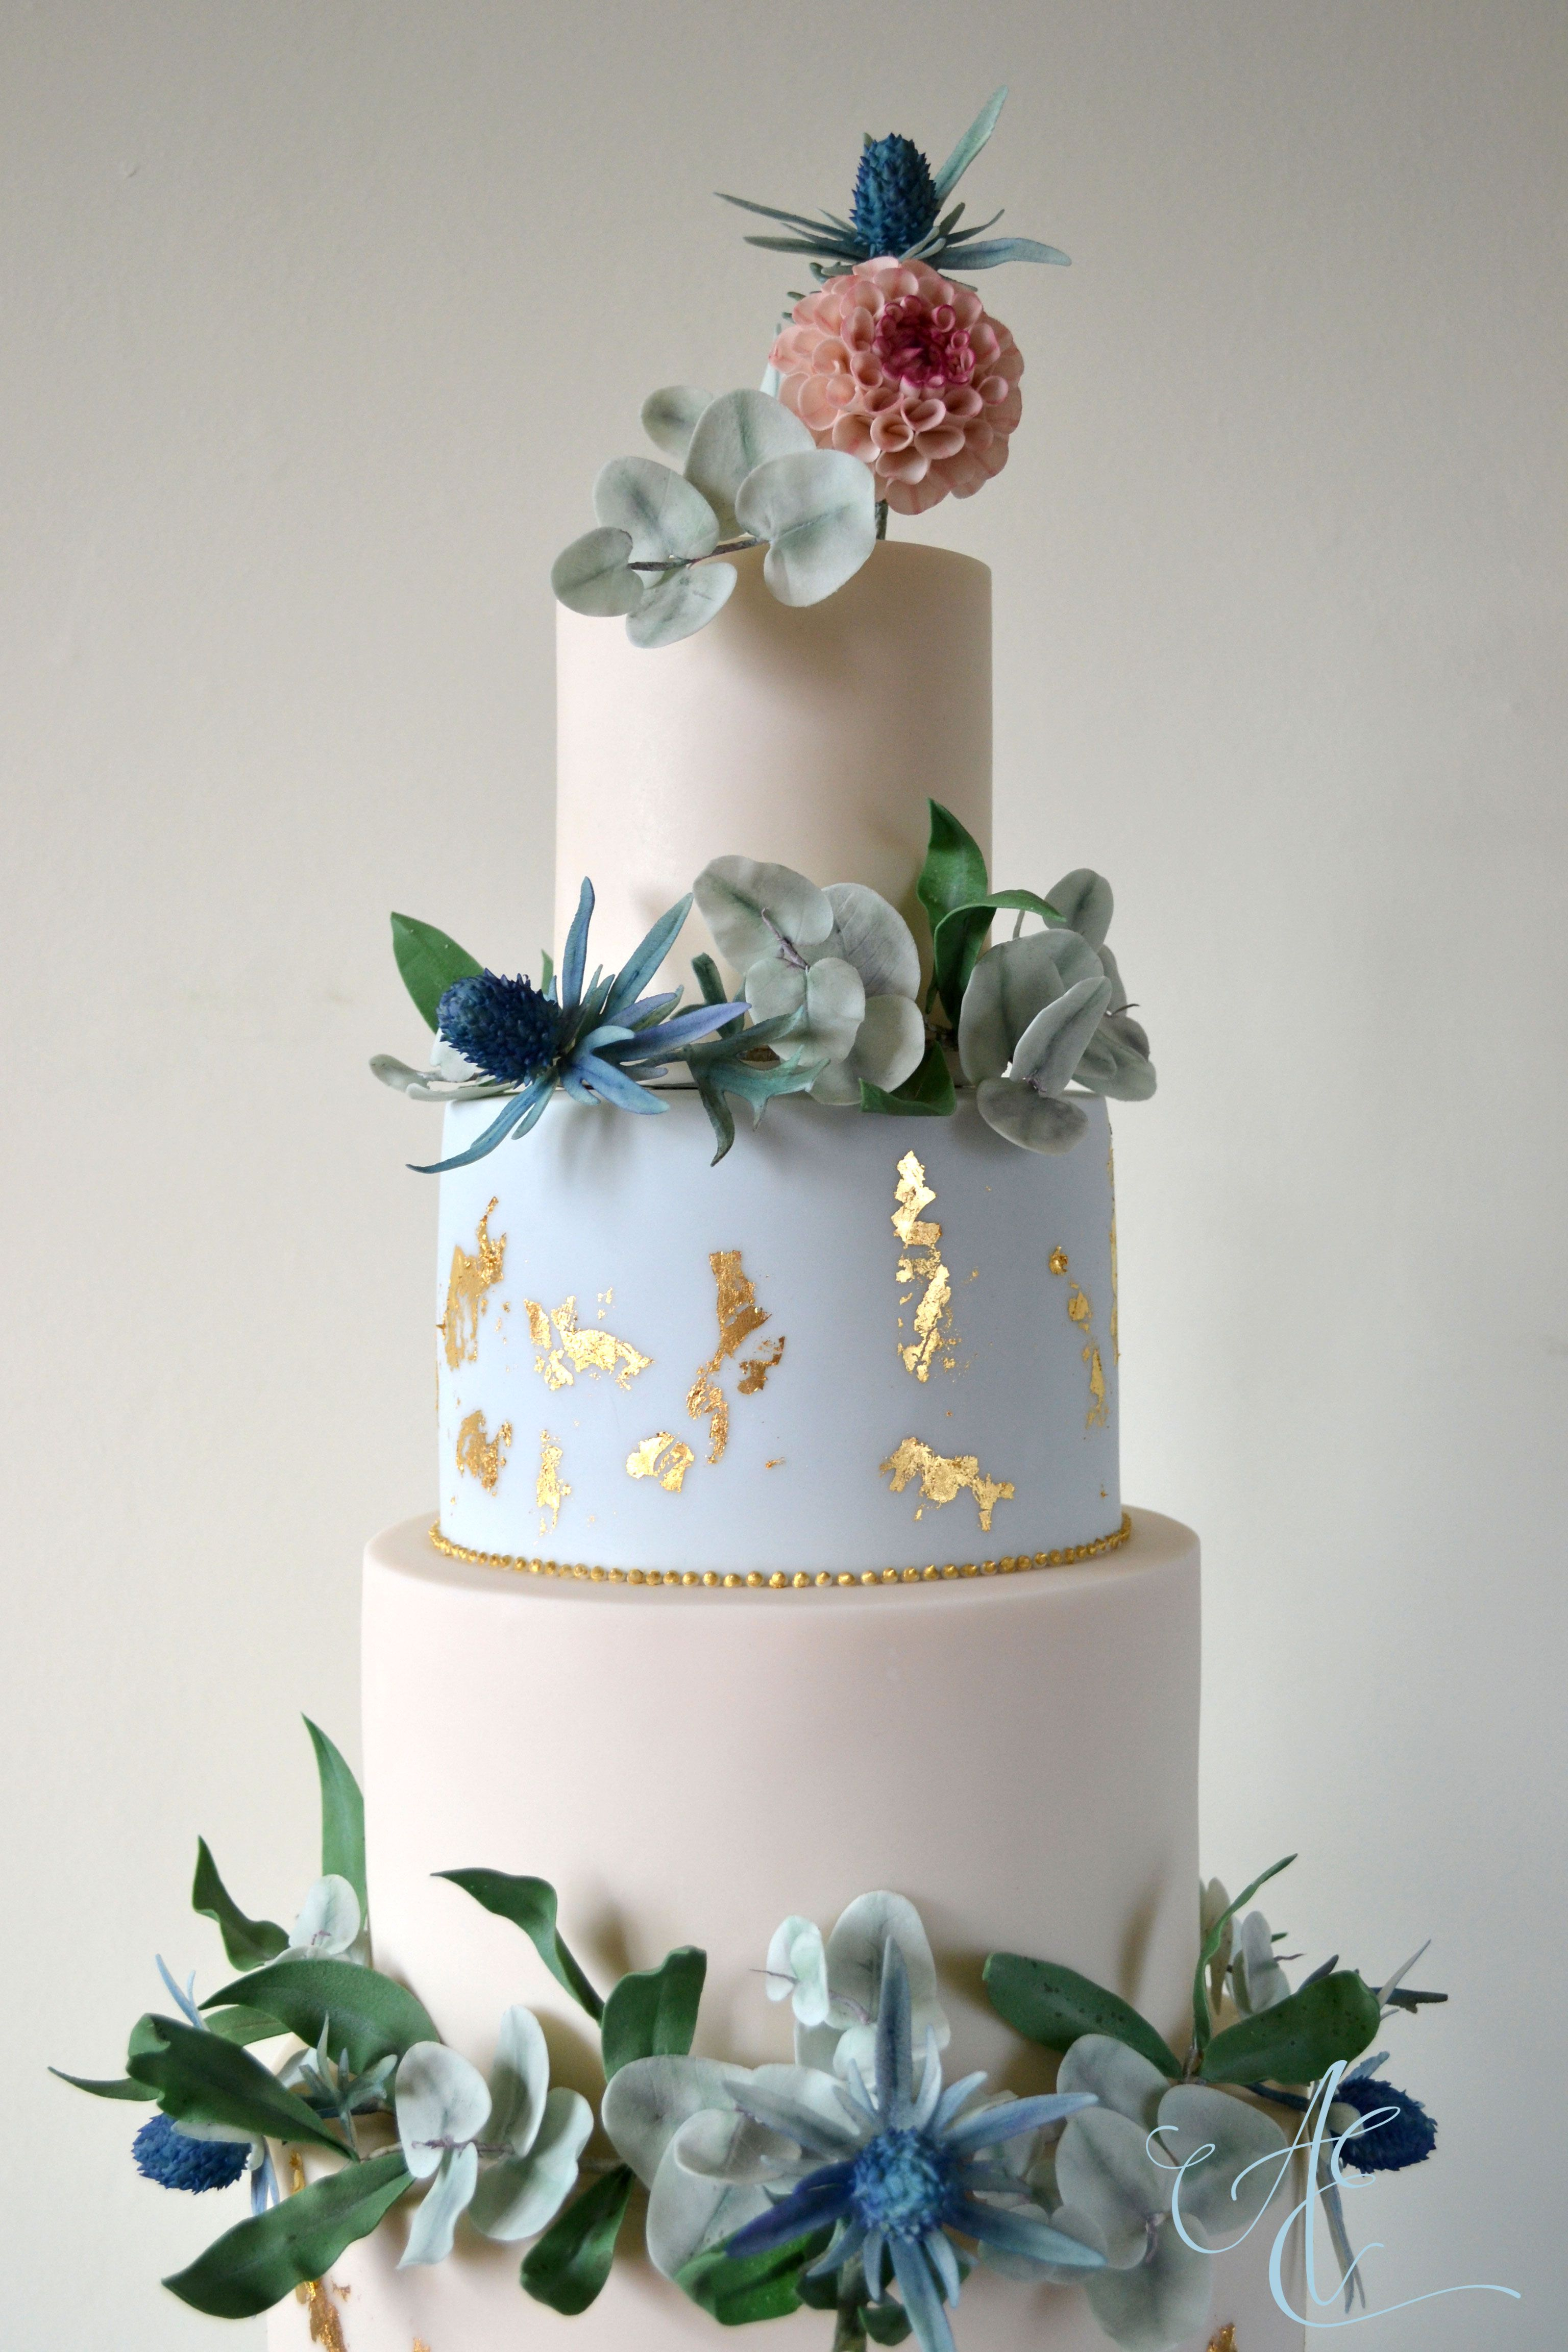 Botanical Meets Opulent Wedding Cake Decorated With Garlands Of Sugar Foliage And Sea Holly A Botanical Wedding Cake Whimsical Wedding Cakes Gold Wedding Cake